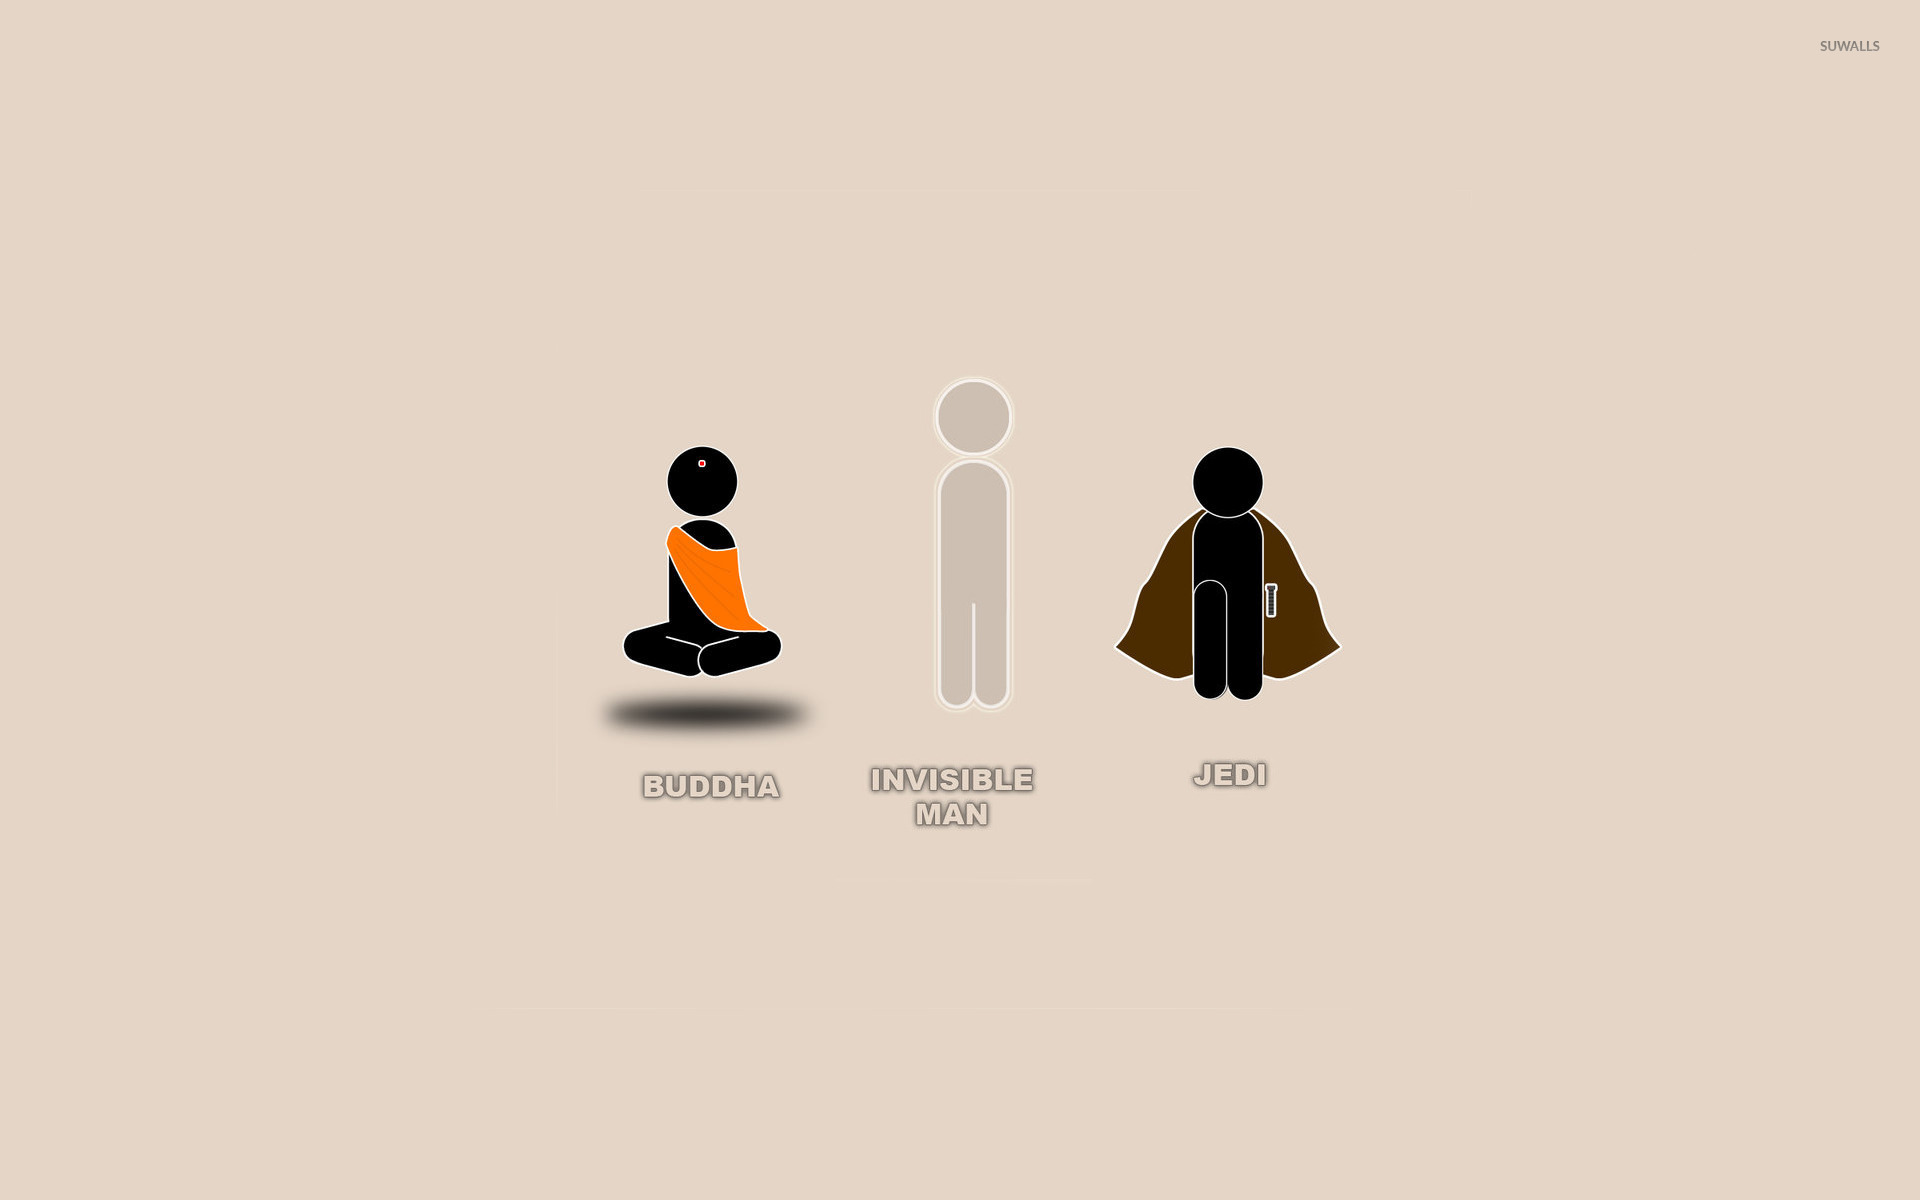 Buddha, Invisible Man and Jedi wallpaper - Funny ...